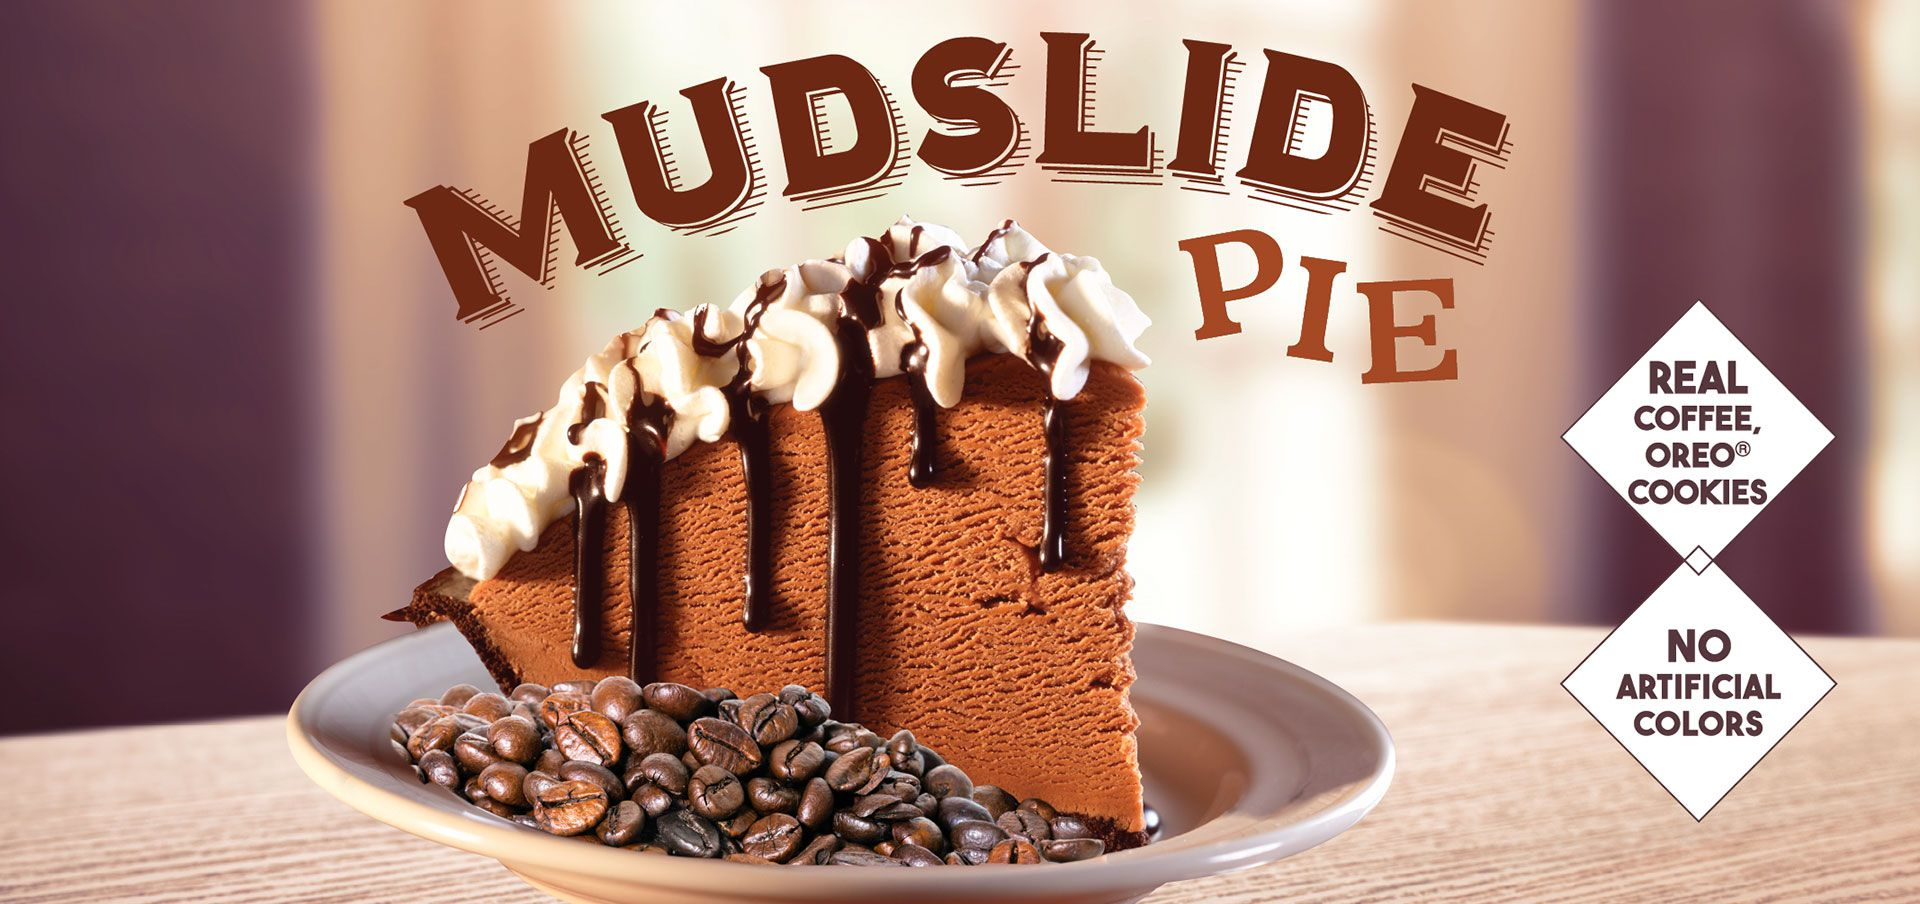 mudslide pie label image